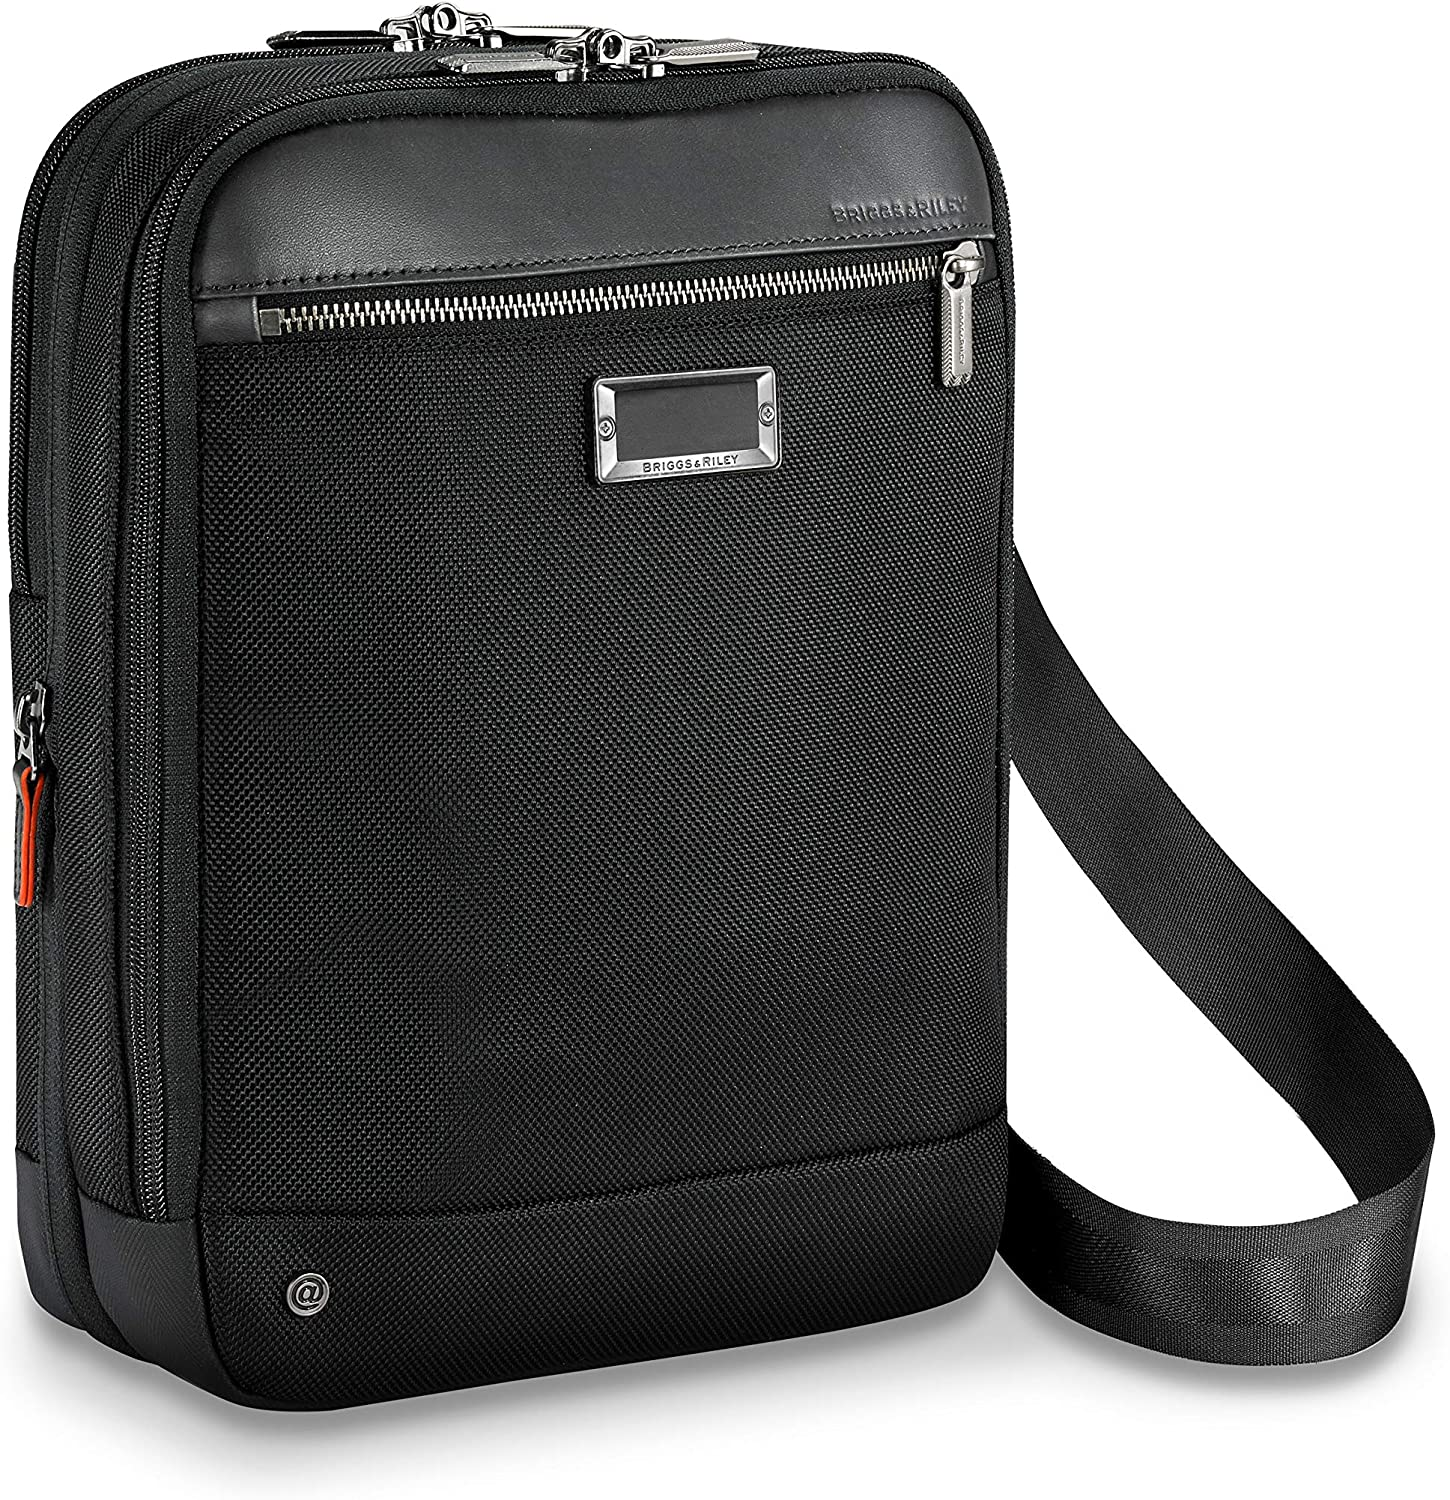 Briggs & Riley @ Work-Expandable Crossbody, Black, One Size